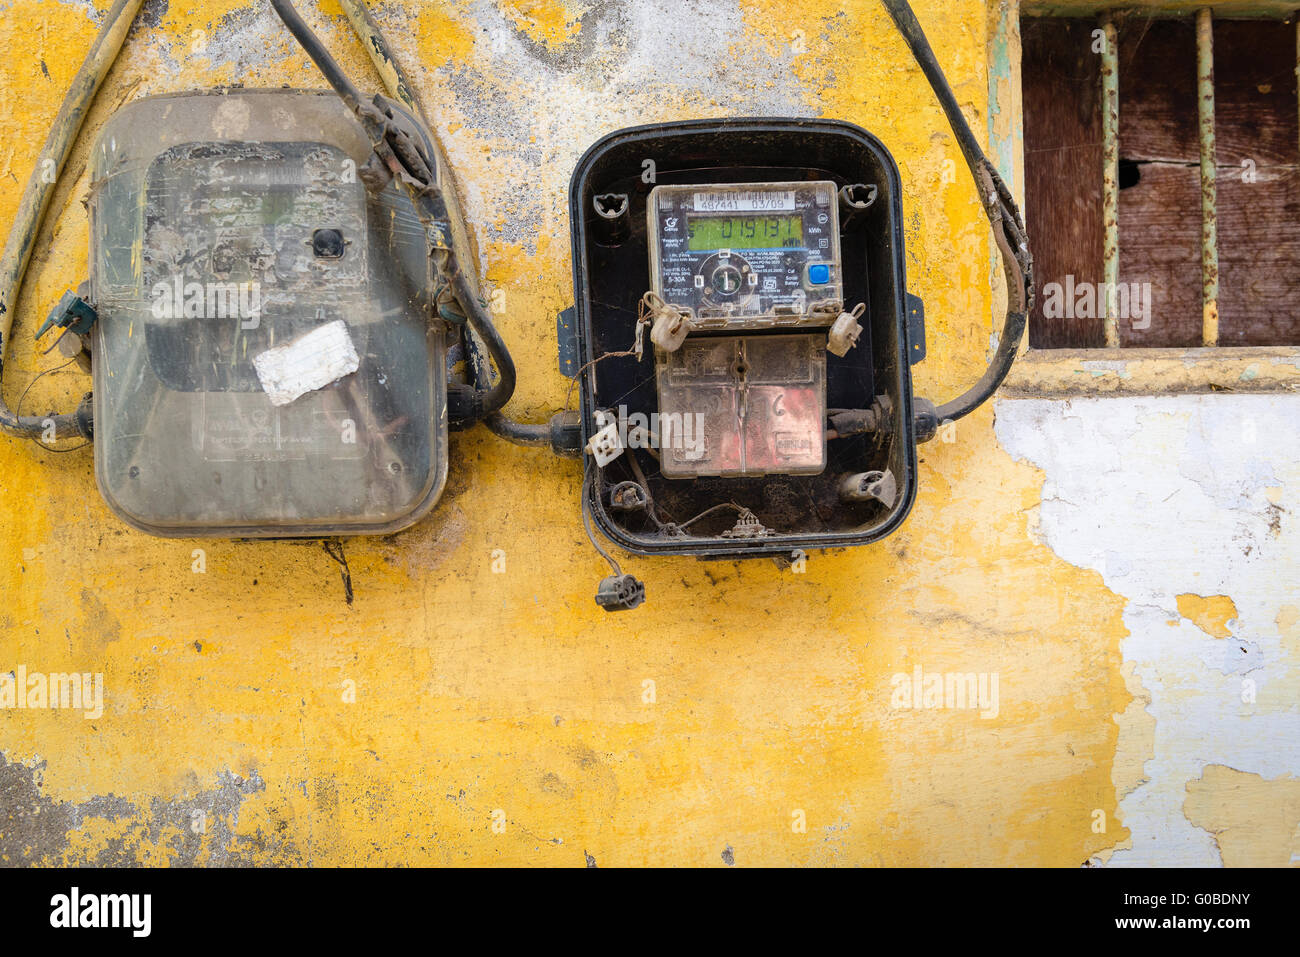 Electrical Wiring Detail Stock Photos Rewiring Old Doorbell In Town Udaipur Image